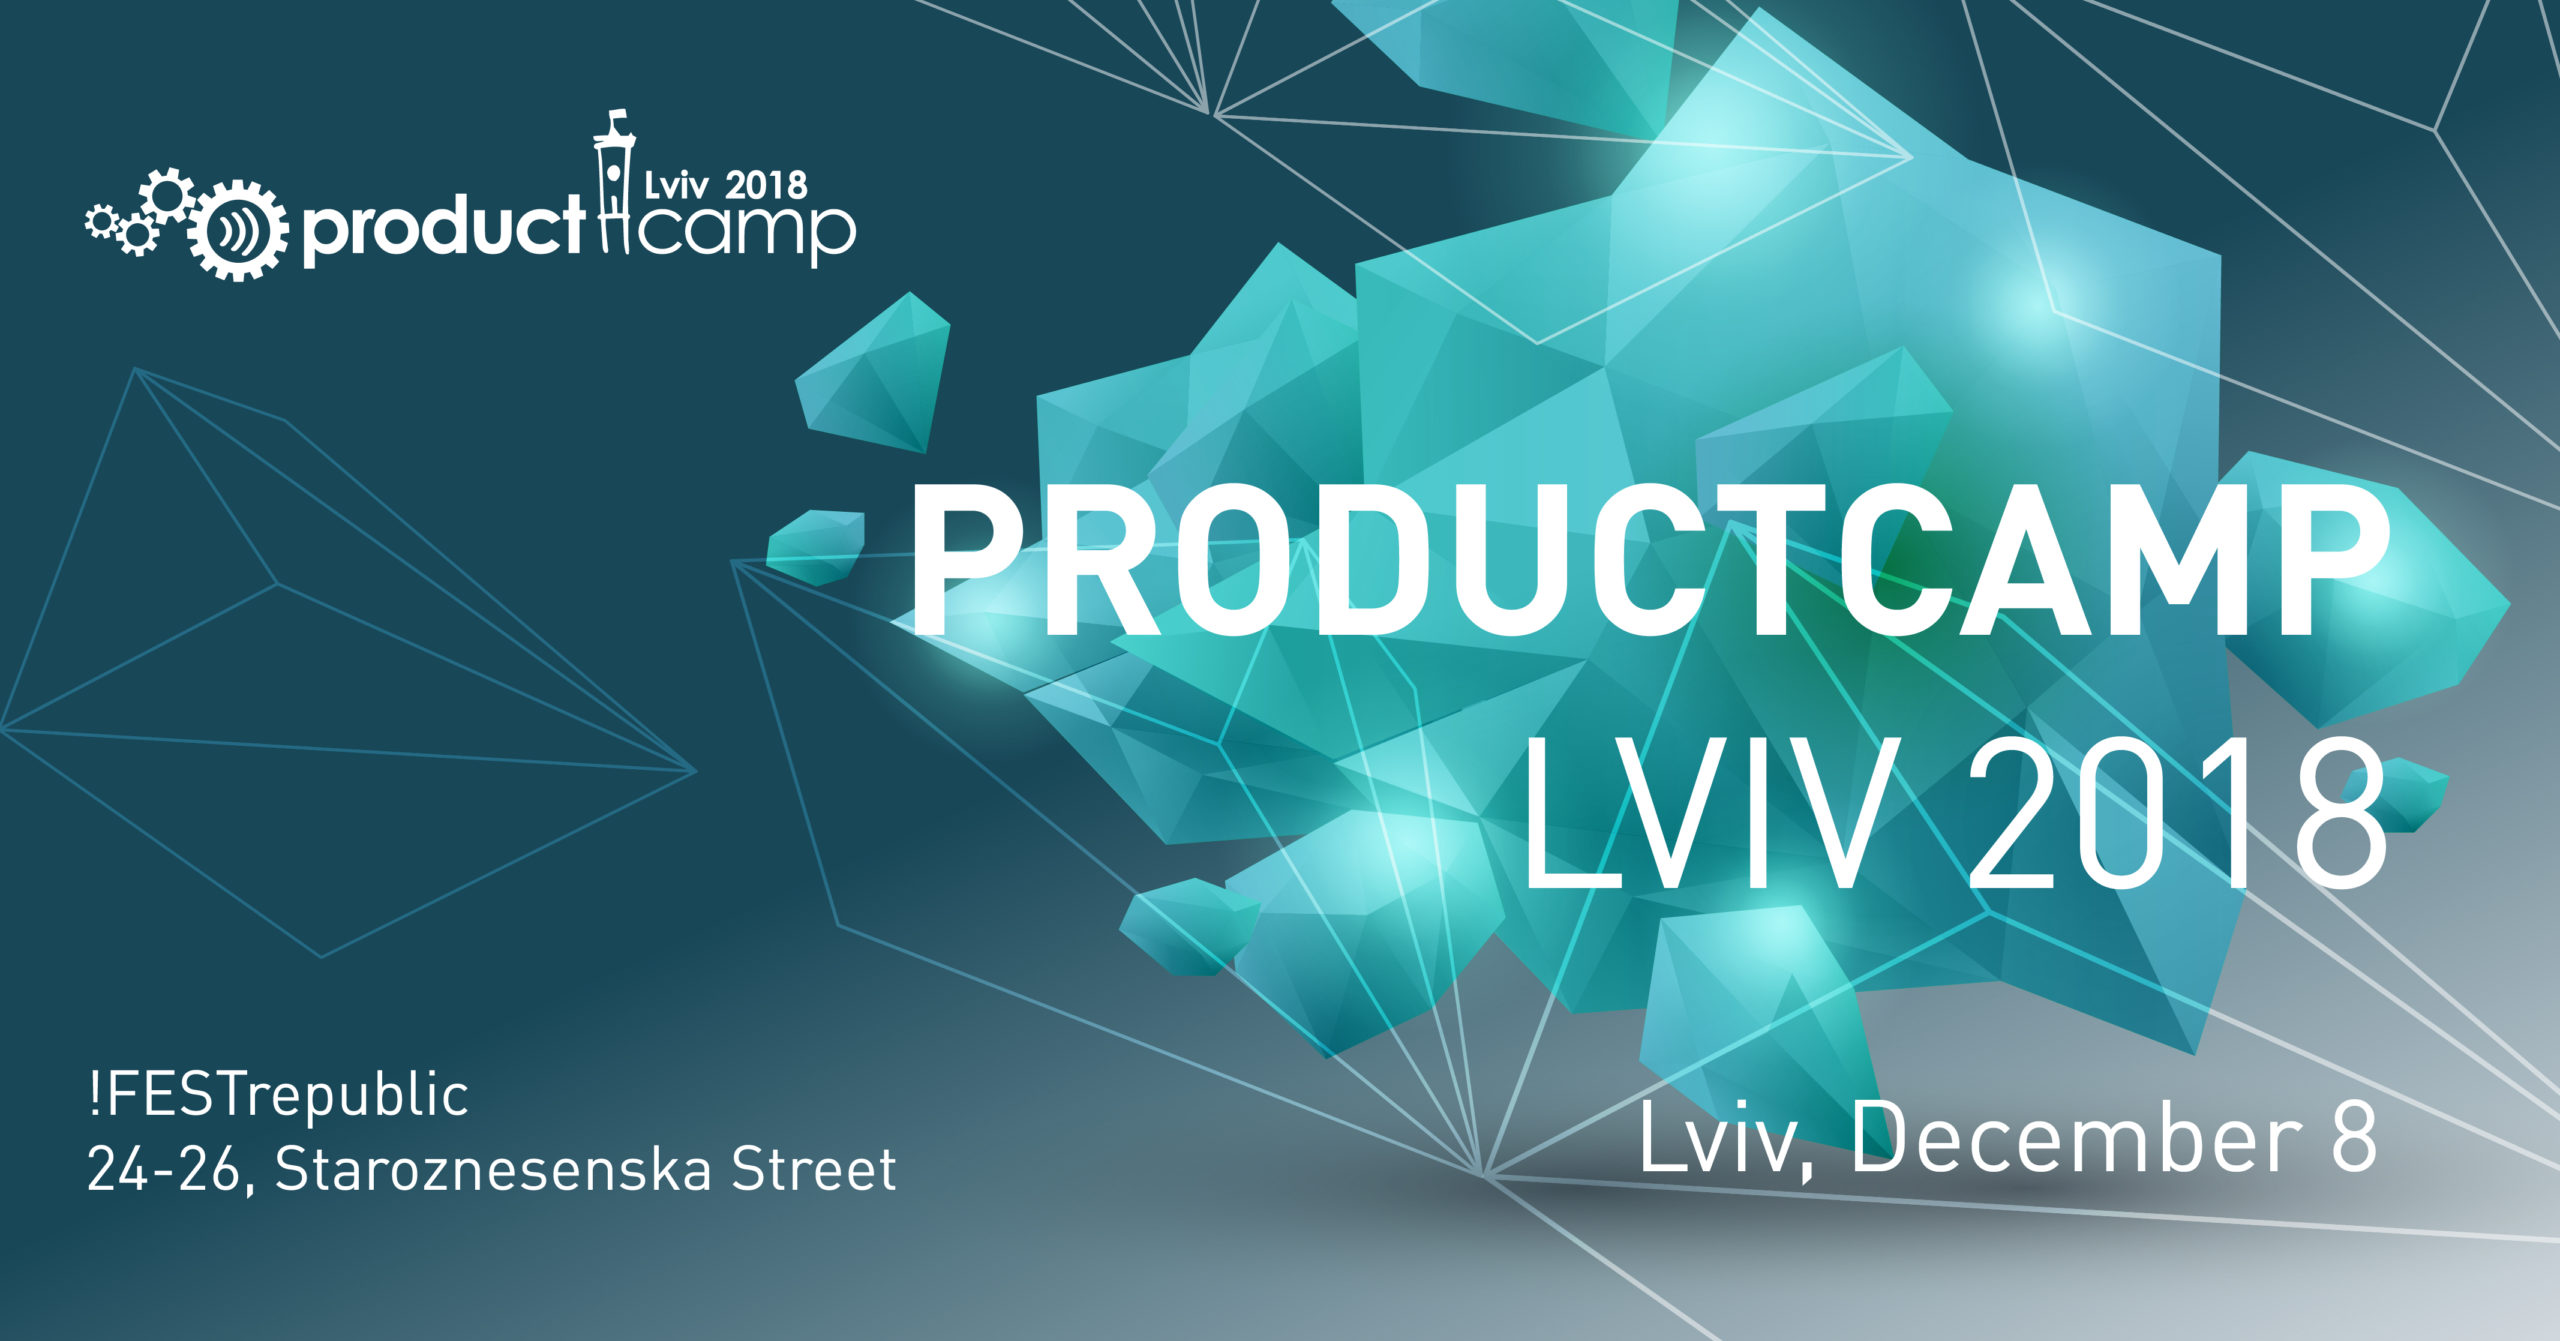 Speaking at ProductCamp L'viv